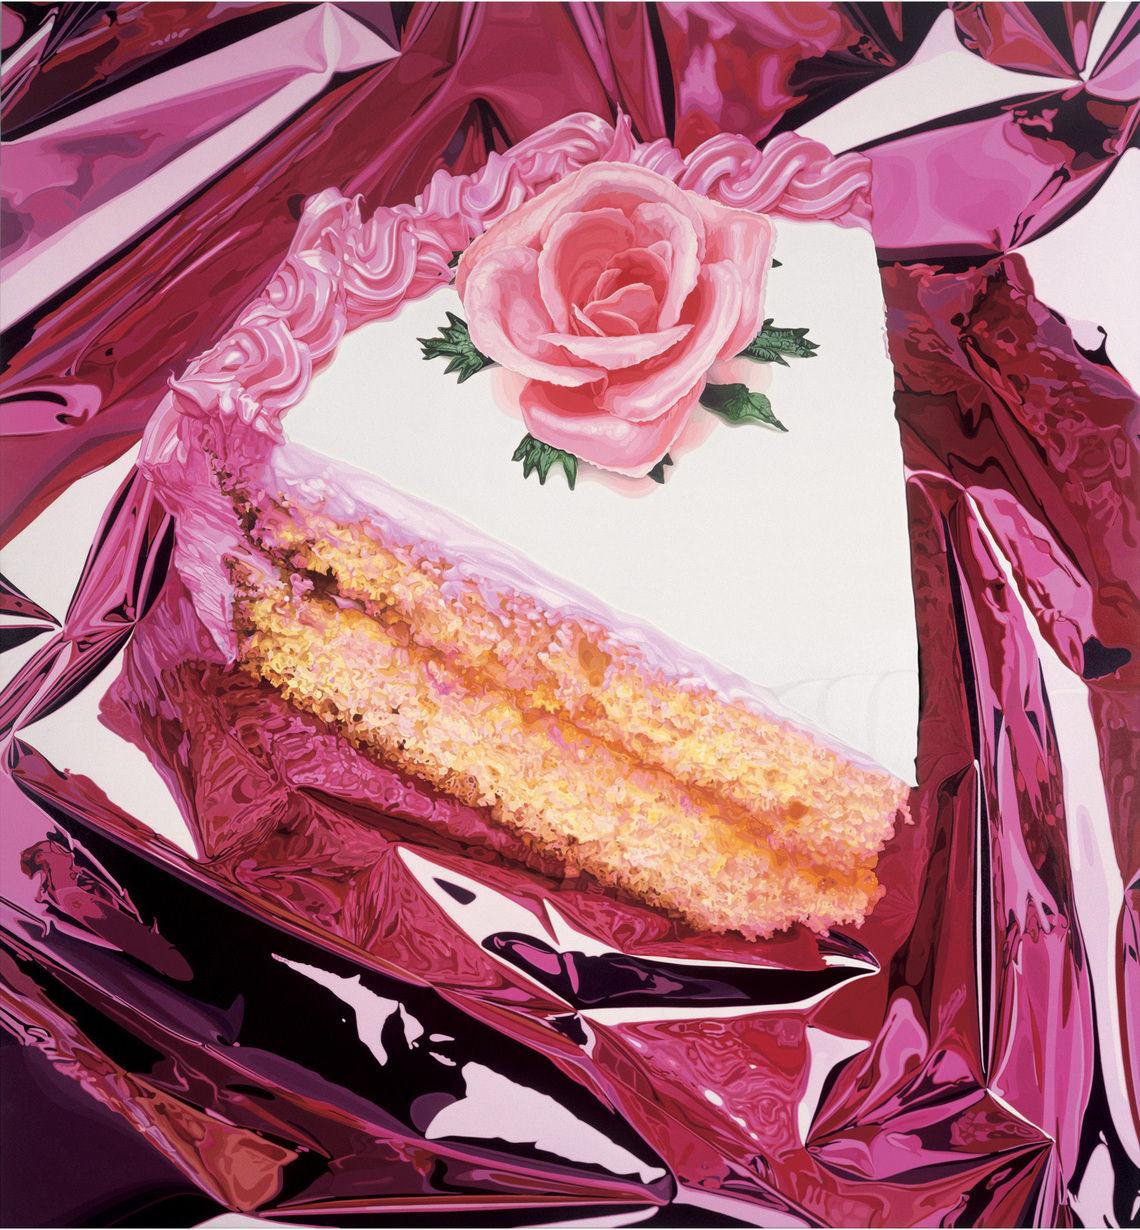 Jeff Koons,  Cake , 1995–97.  Oil on canvas; 125 3⁄8 x 116 3⁄8 in. (318.5 × 295.6 cm). Private collection. © Jeff Koons